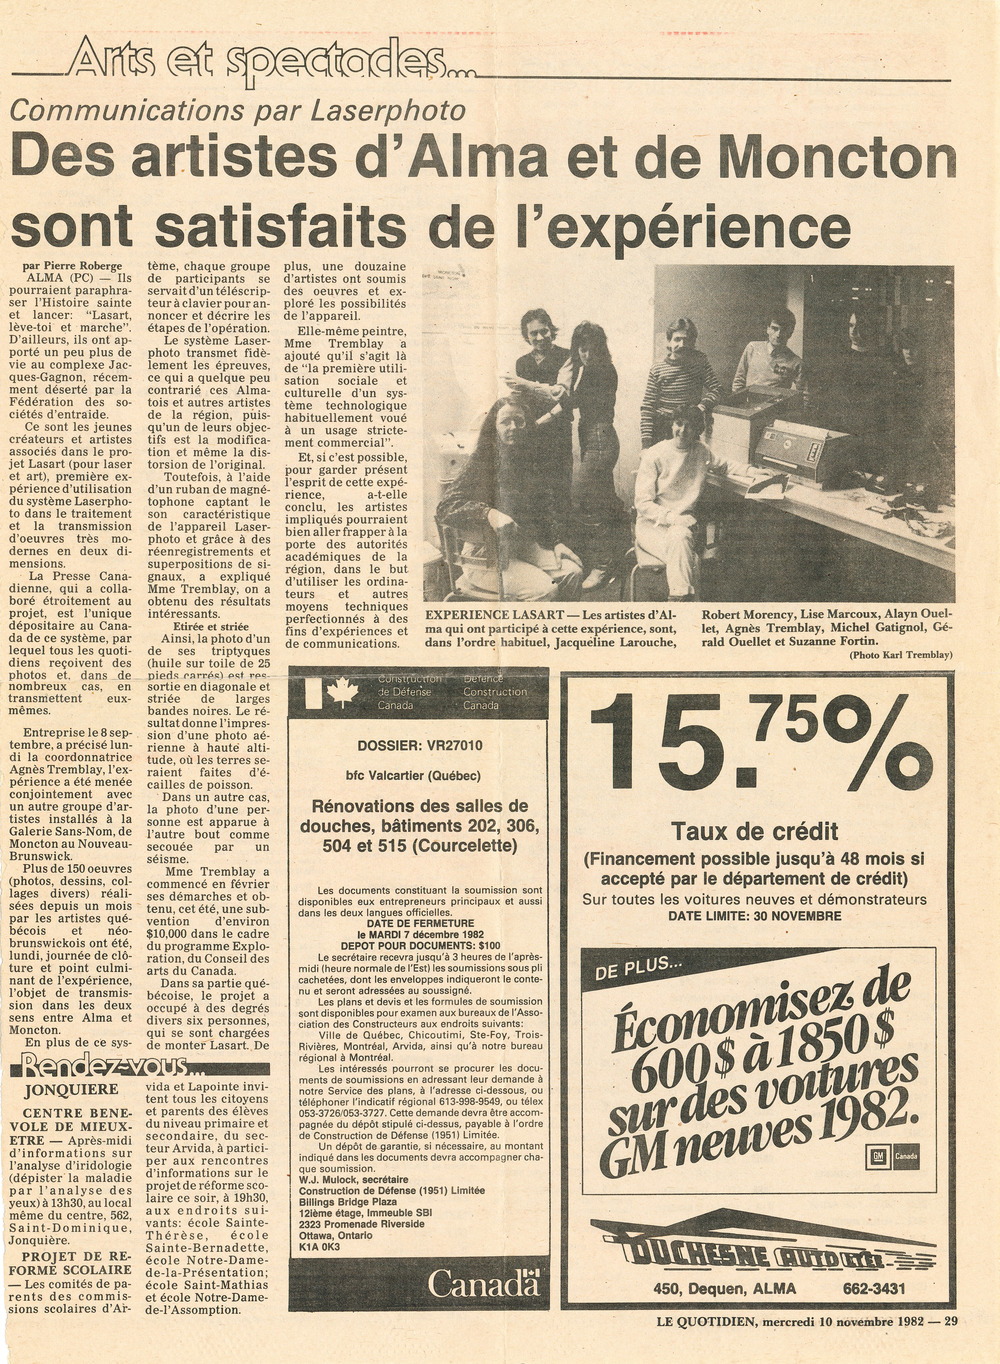 Document original : Article de presse, Le Quotidien, 10 novembre 1982.